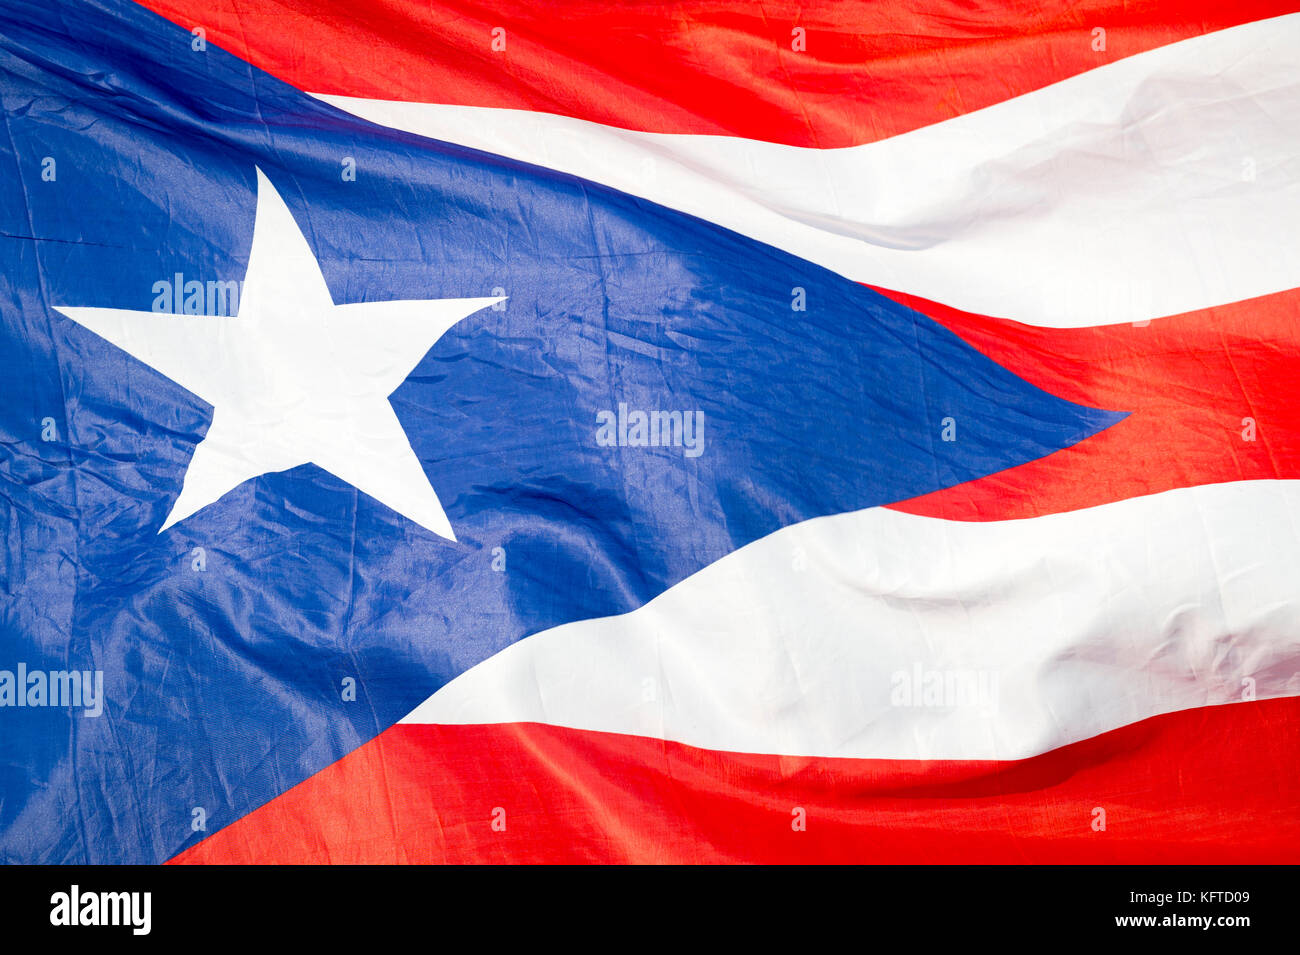 Abstract close-up view of flag of Puerto Rico fluttering in the breeze. - Stock Image